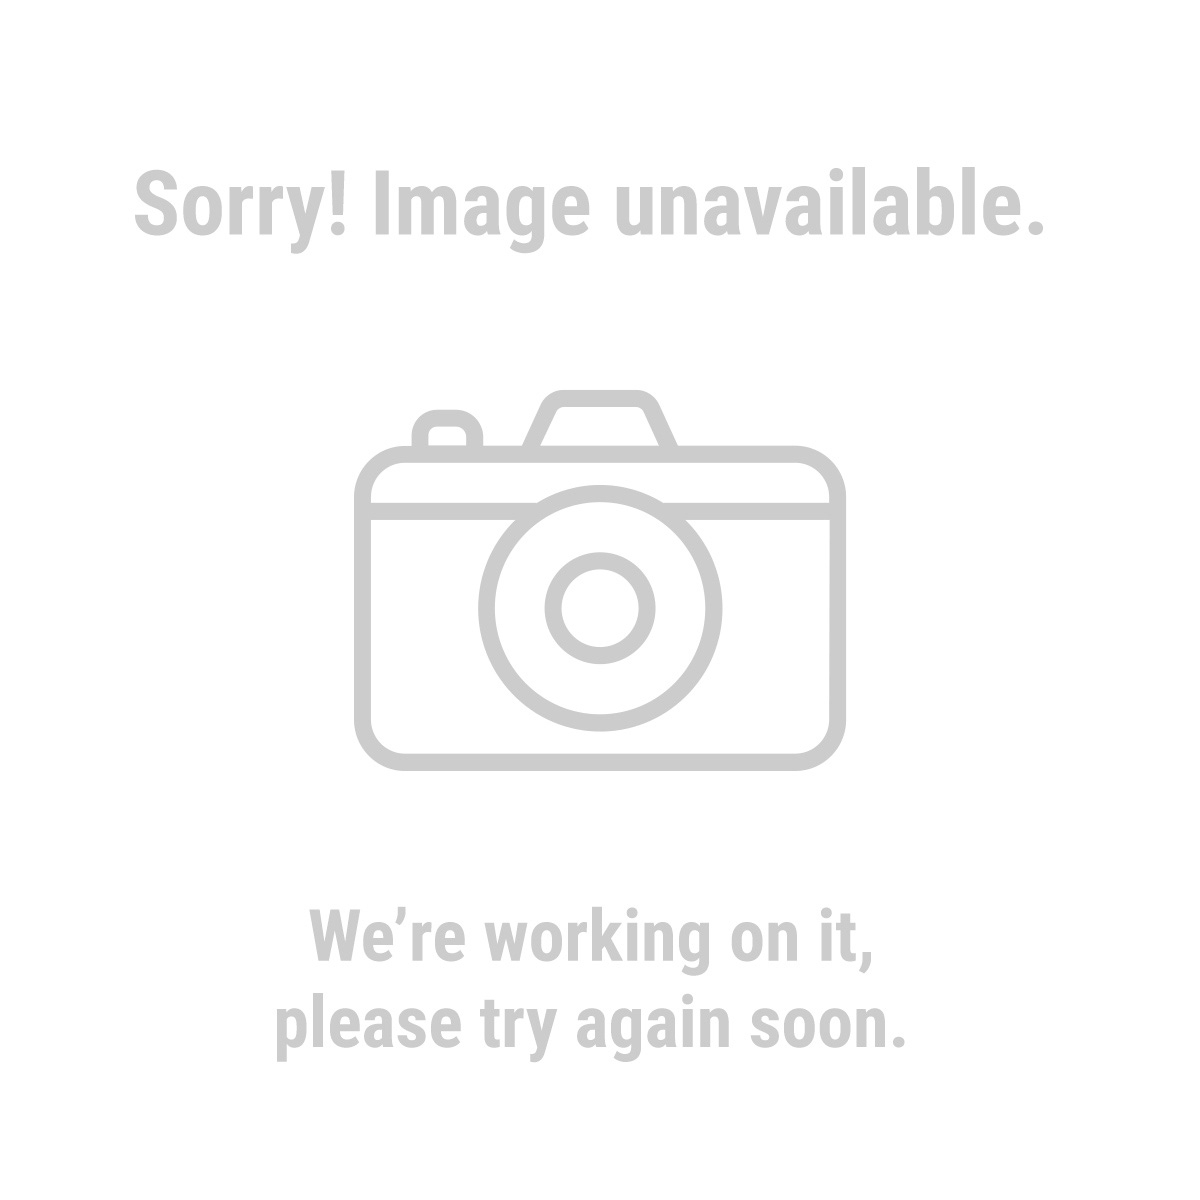 Pittsburgh 69420 22 Piece Screwdriver Set